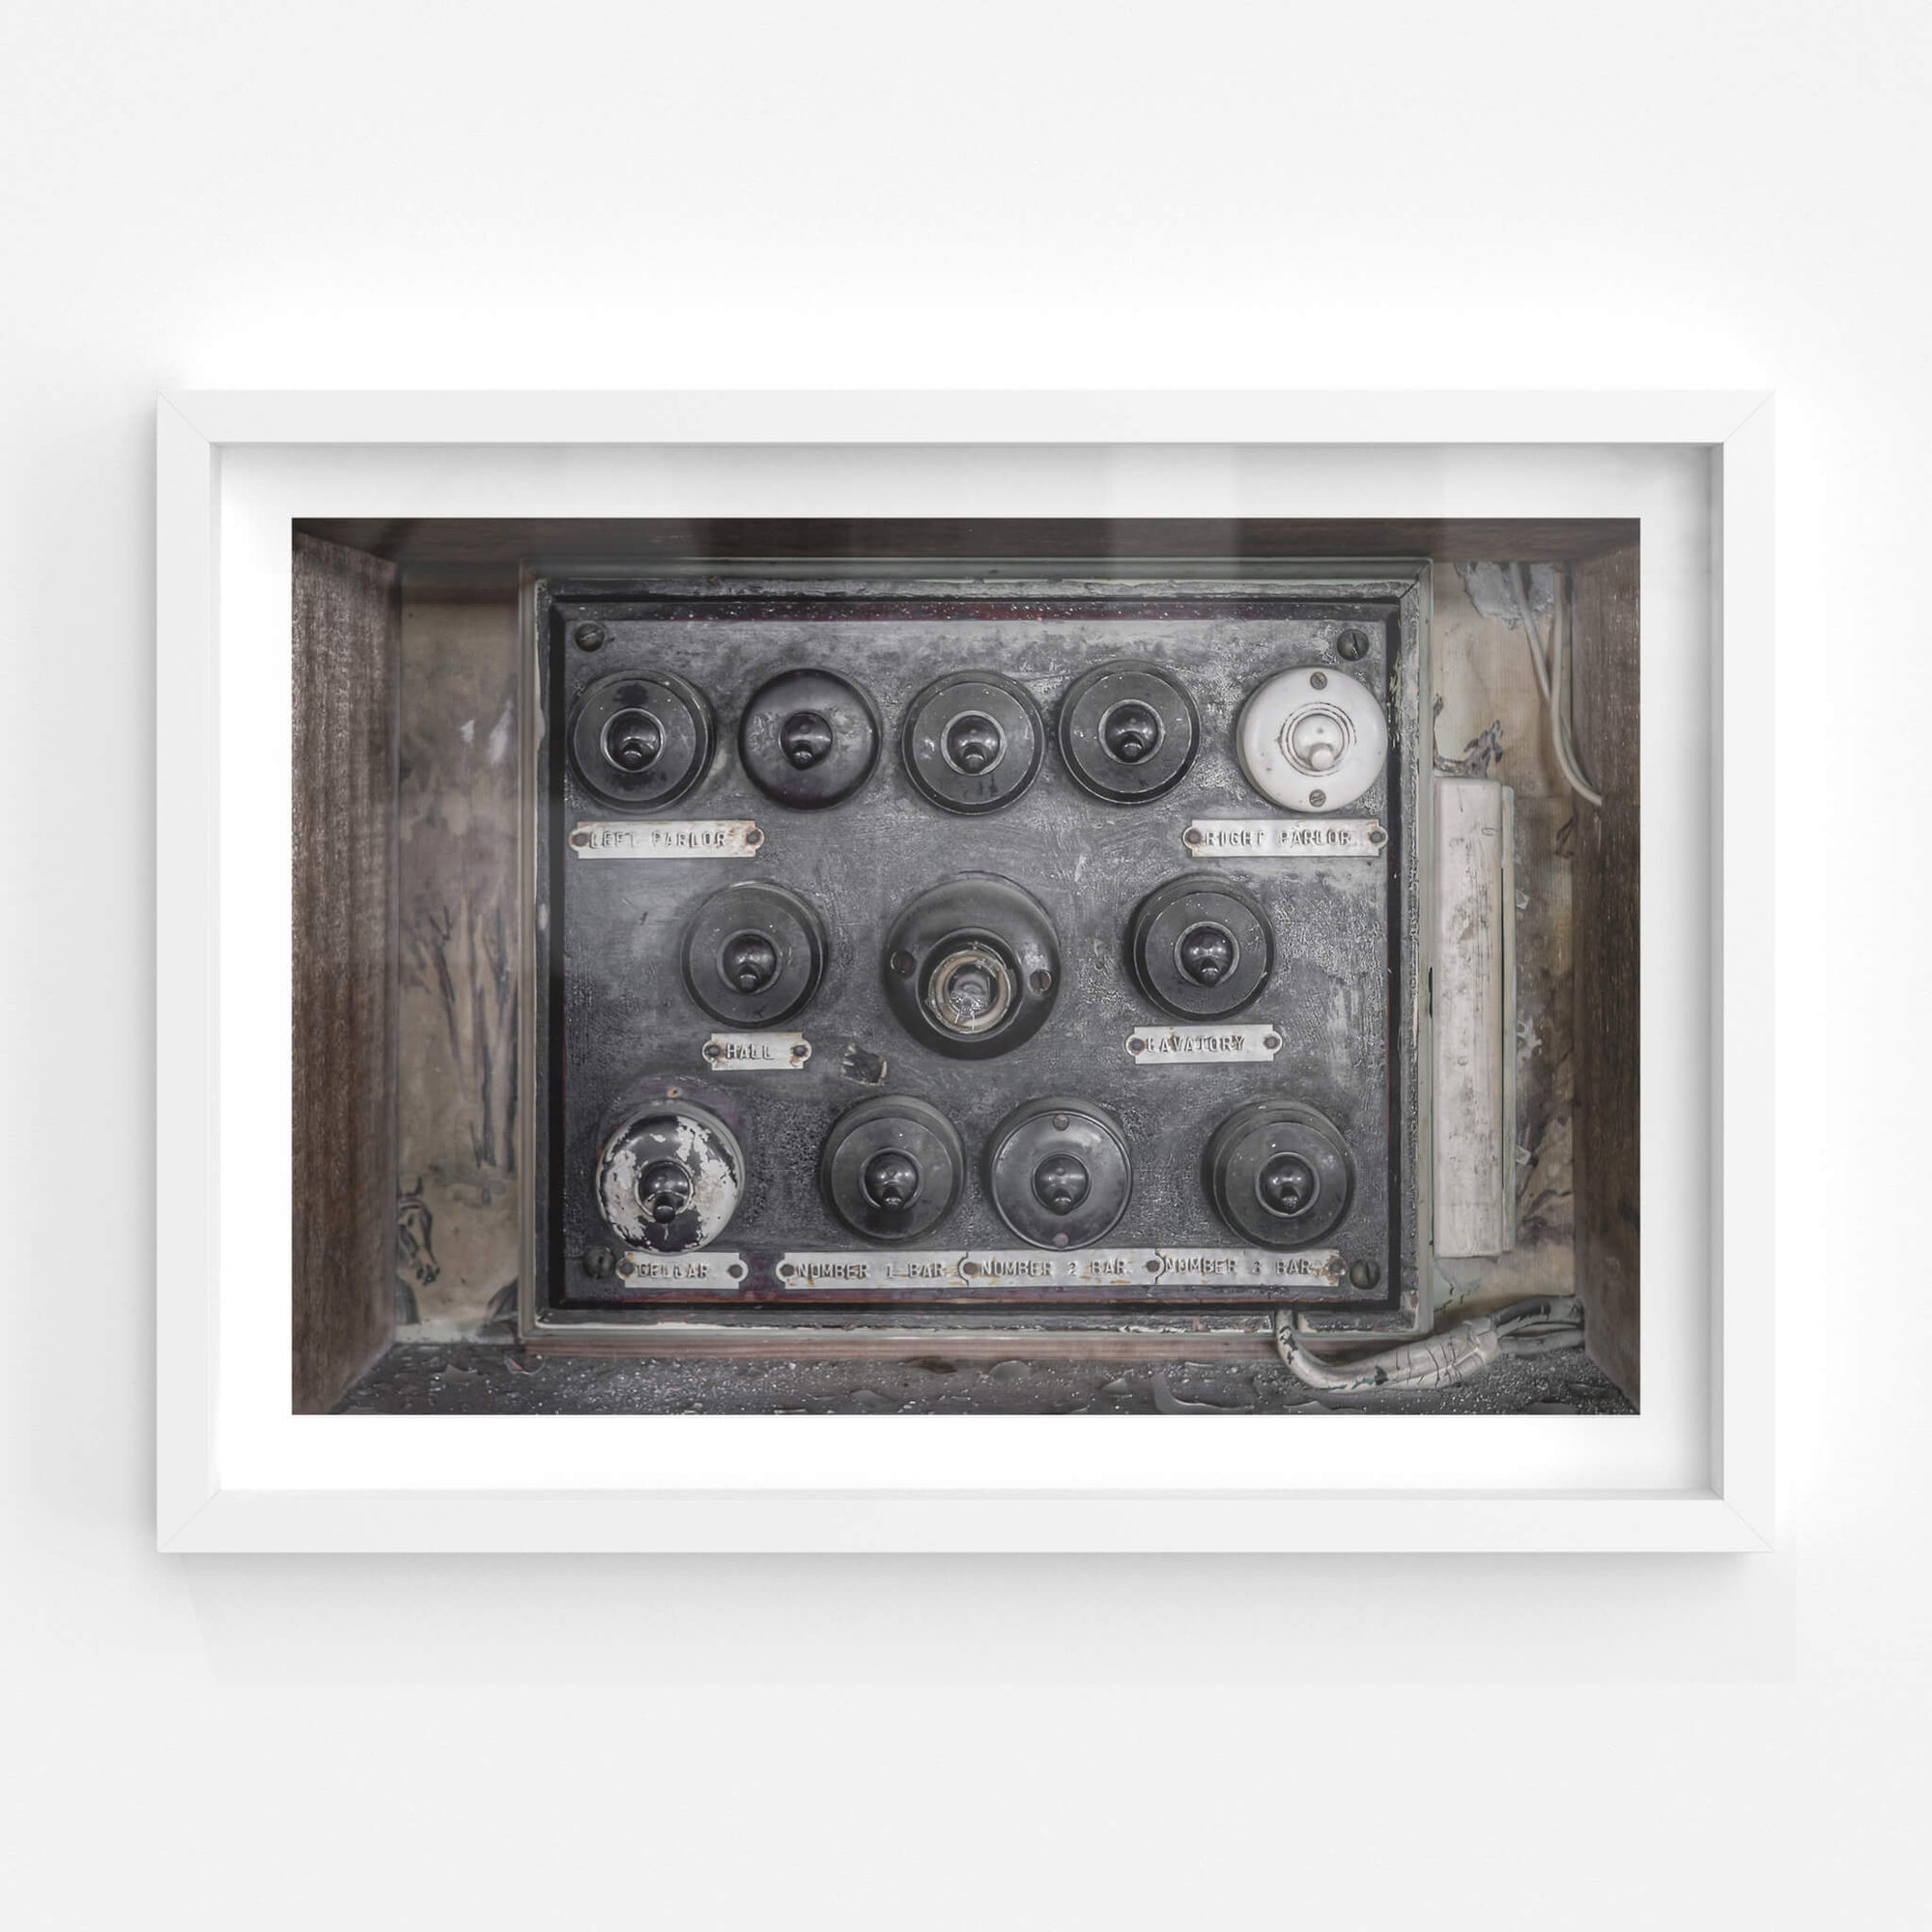 Downstairs Light Switches | Terminus Hotel Fine Art Print - Lost Collective Shop